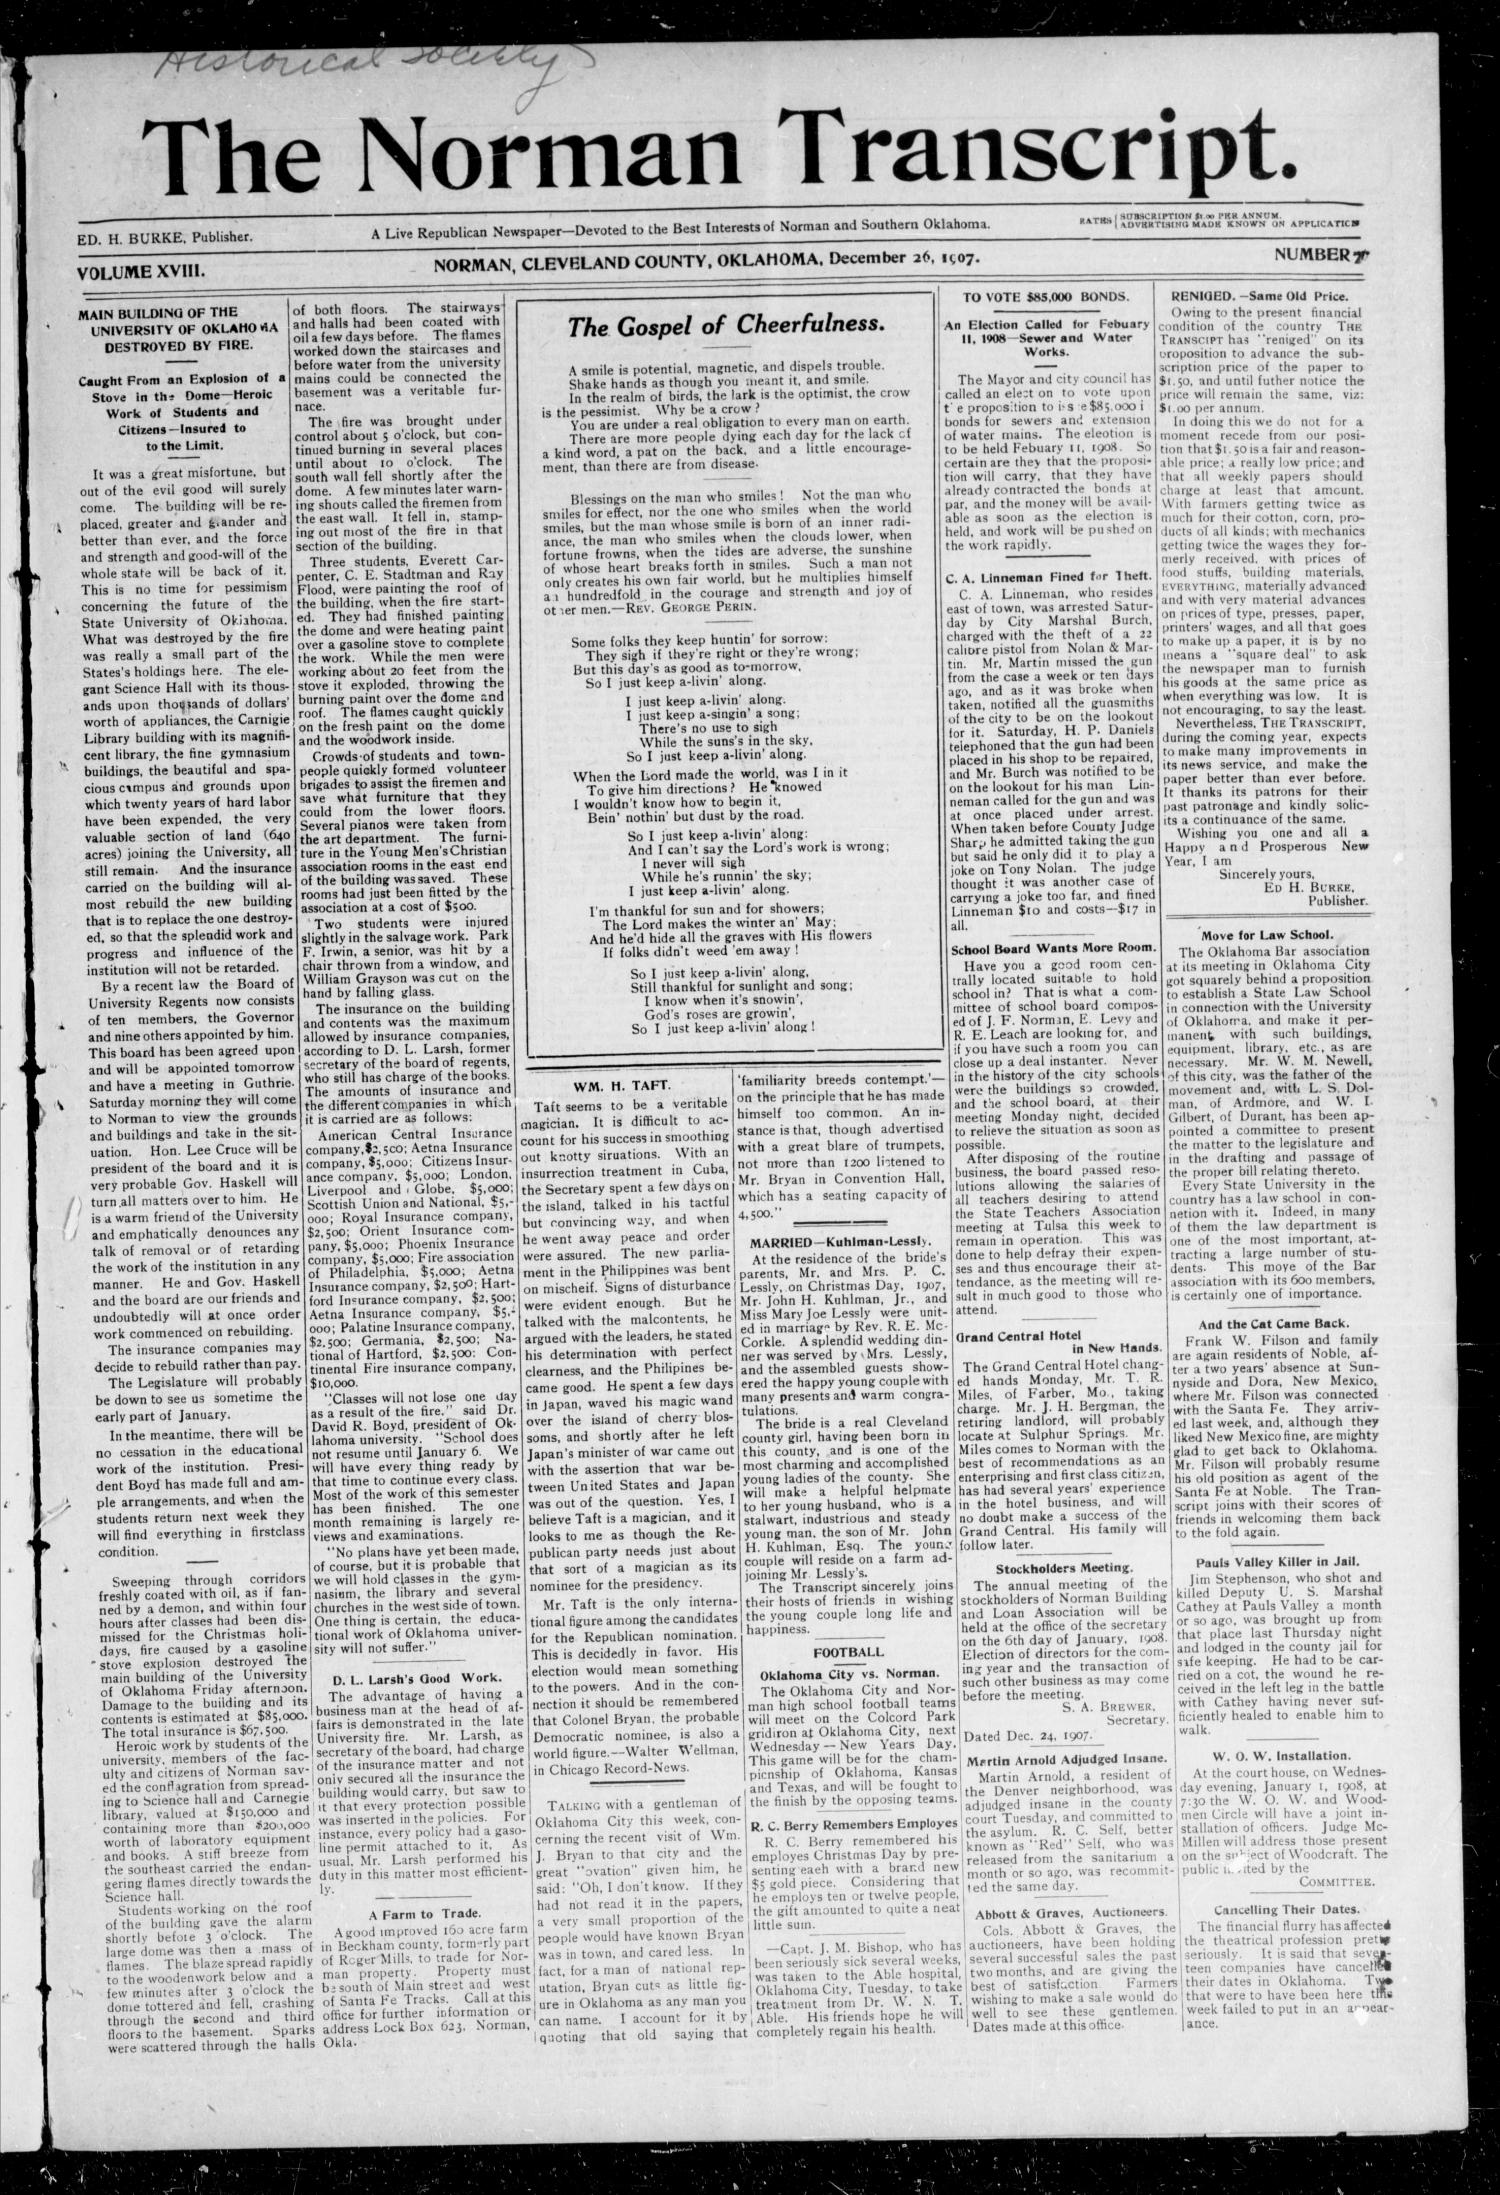 The Norman Transcript. (Norman, Okla.), Vol. 19, No. 7, Ed. 1 Thursday, December 26, 1907                                                                                                      [Sequence #]: 1 of 8